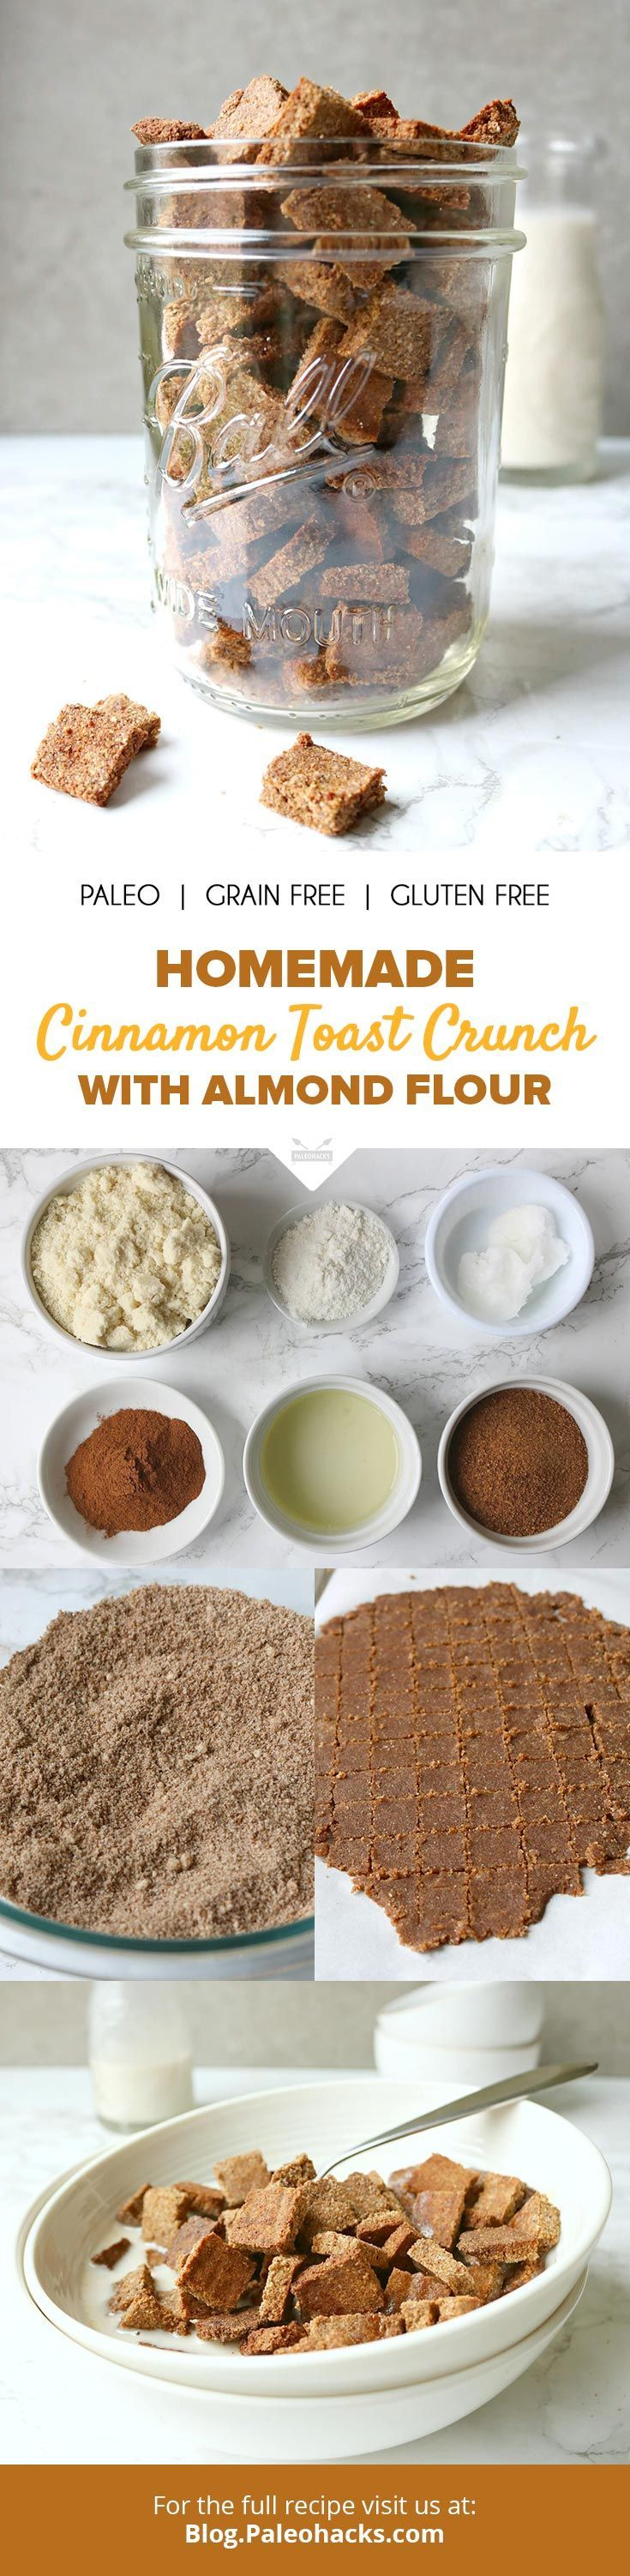 Grab a spoonful of this Cinnamon Toast Crunch cereal that's completely free of refined sugar and wheat! Get the full recipe here: http://paleo.co/cinnamoncrunch